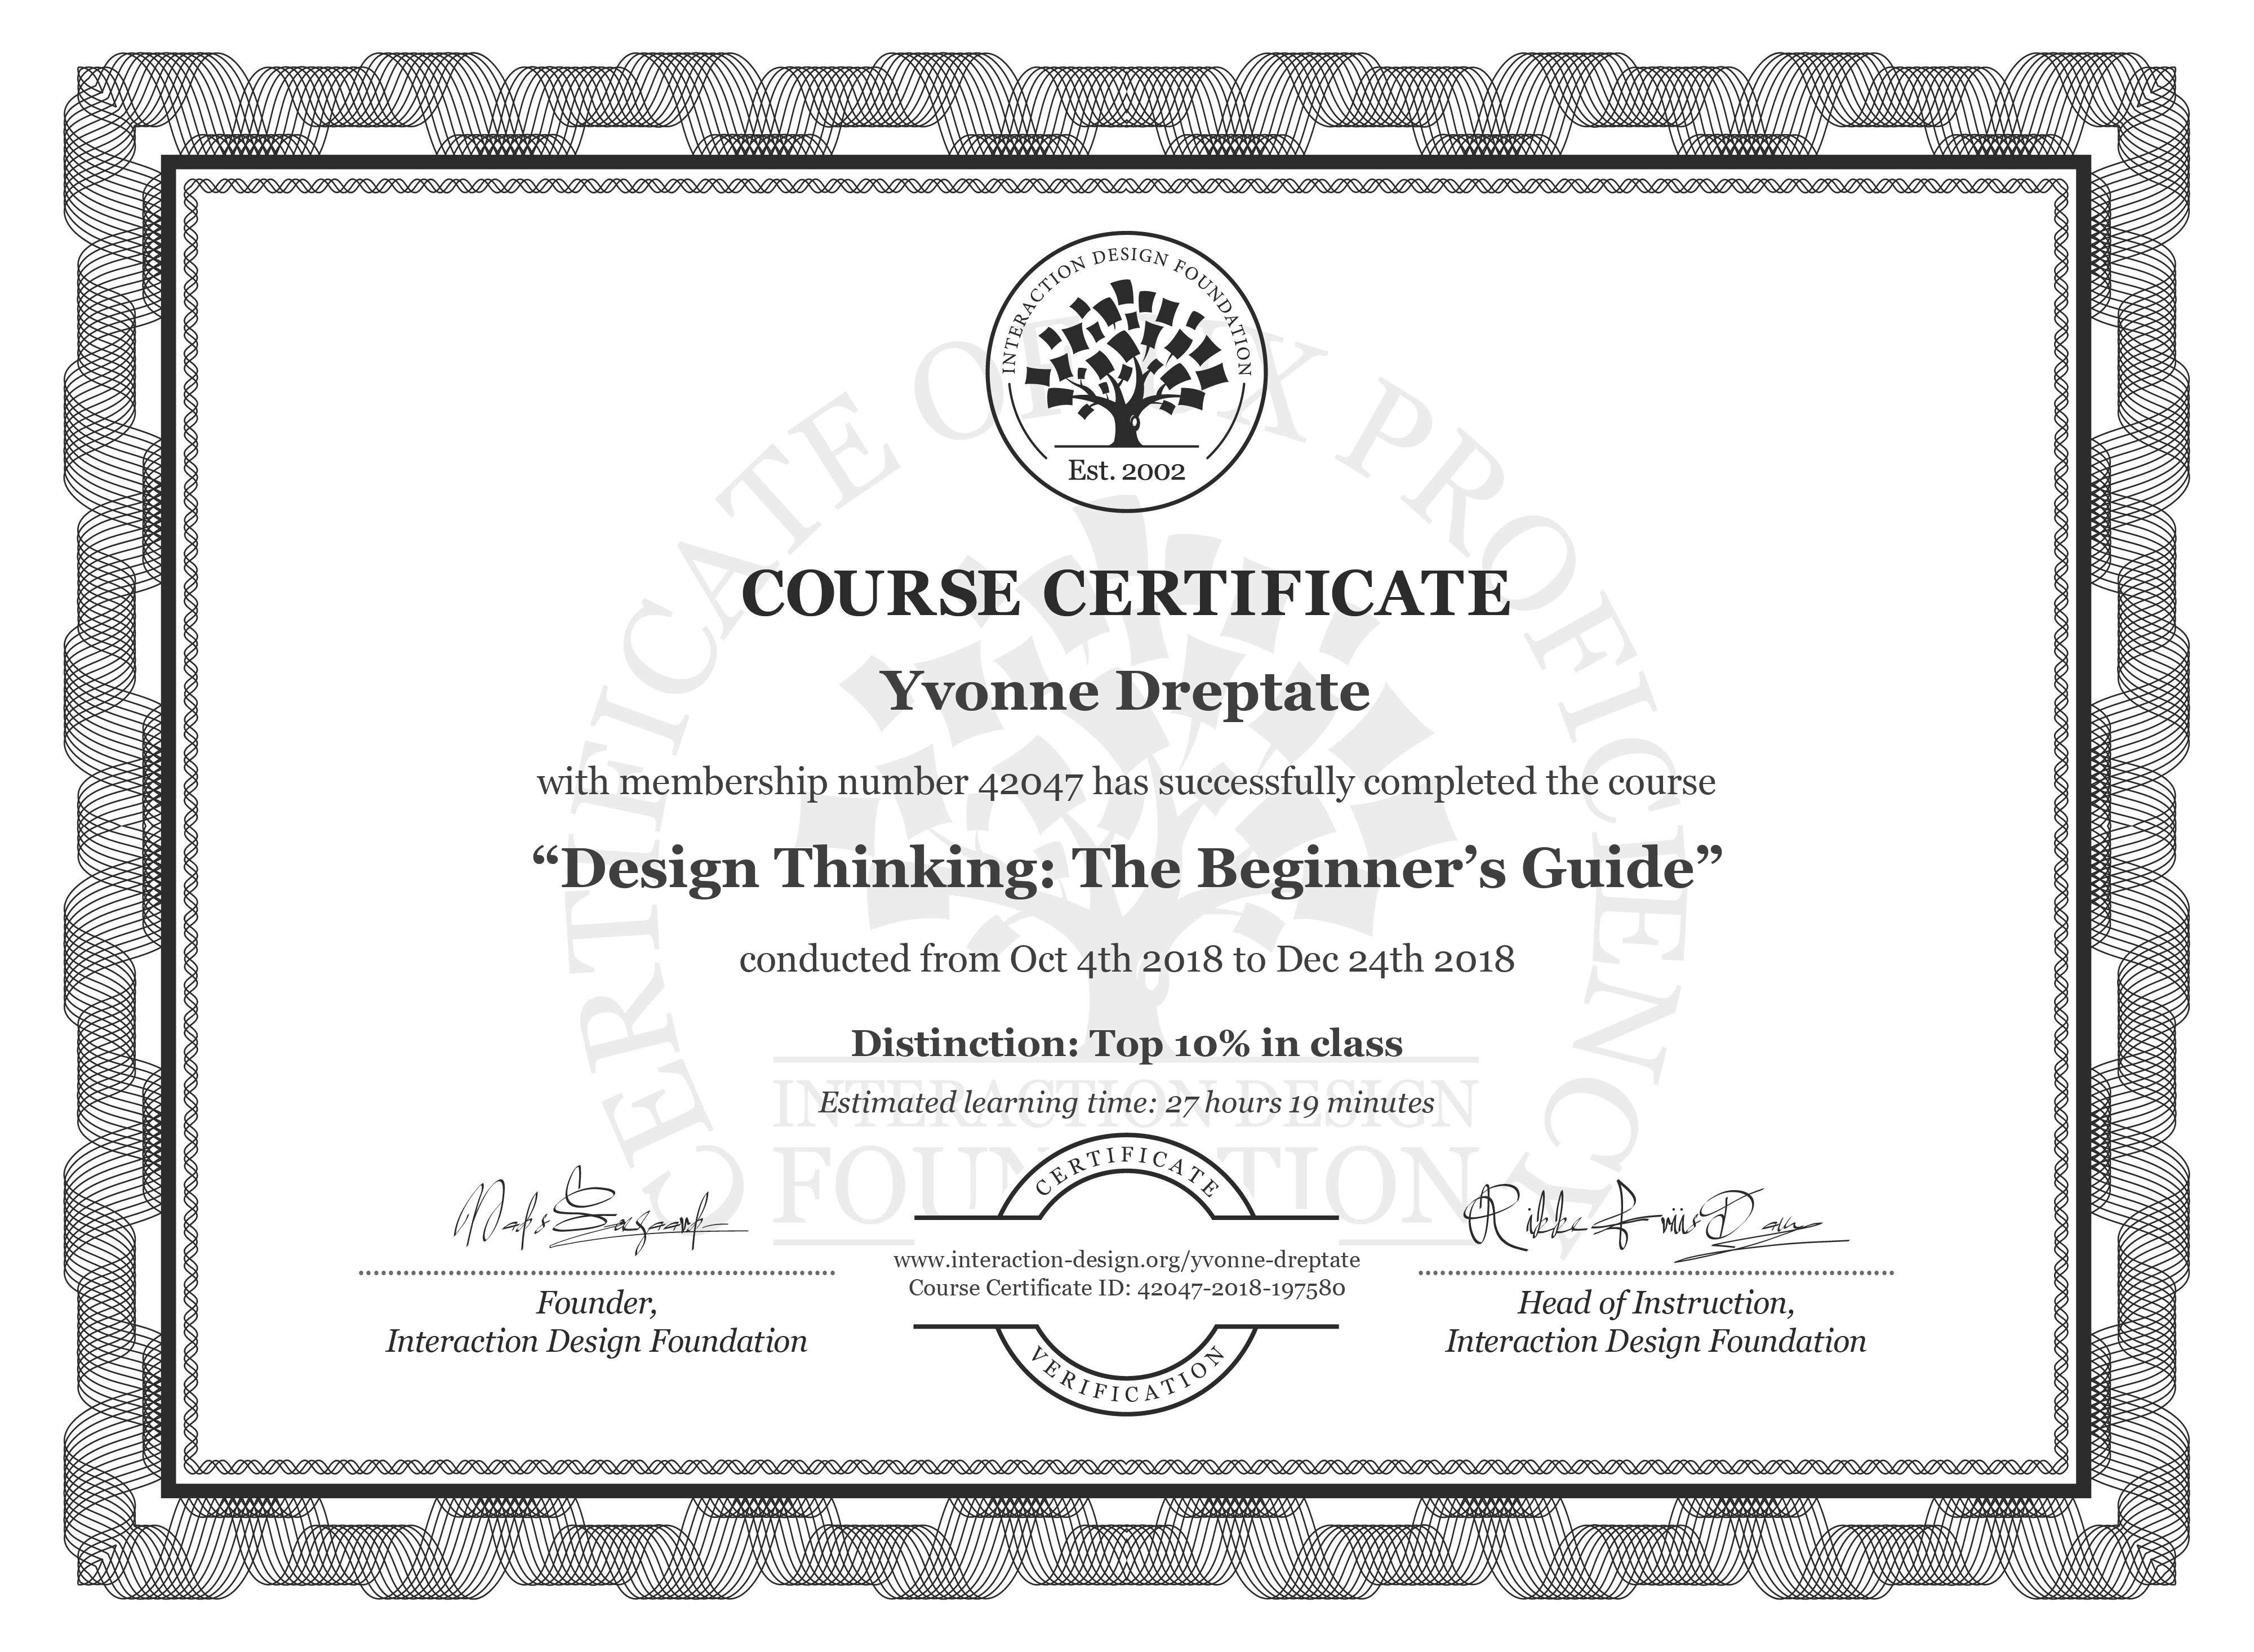 Yvonne Dreptate's Course Certificate: Design Thinking: The Beginner's Guide